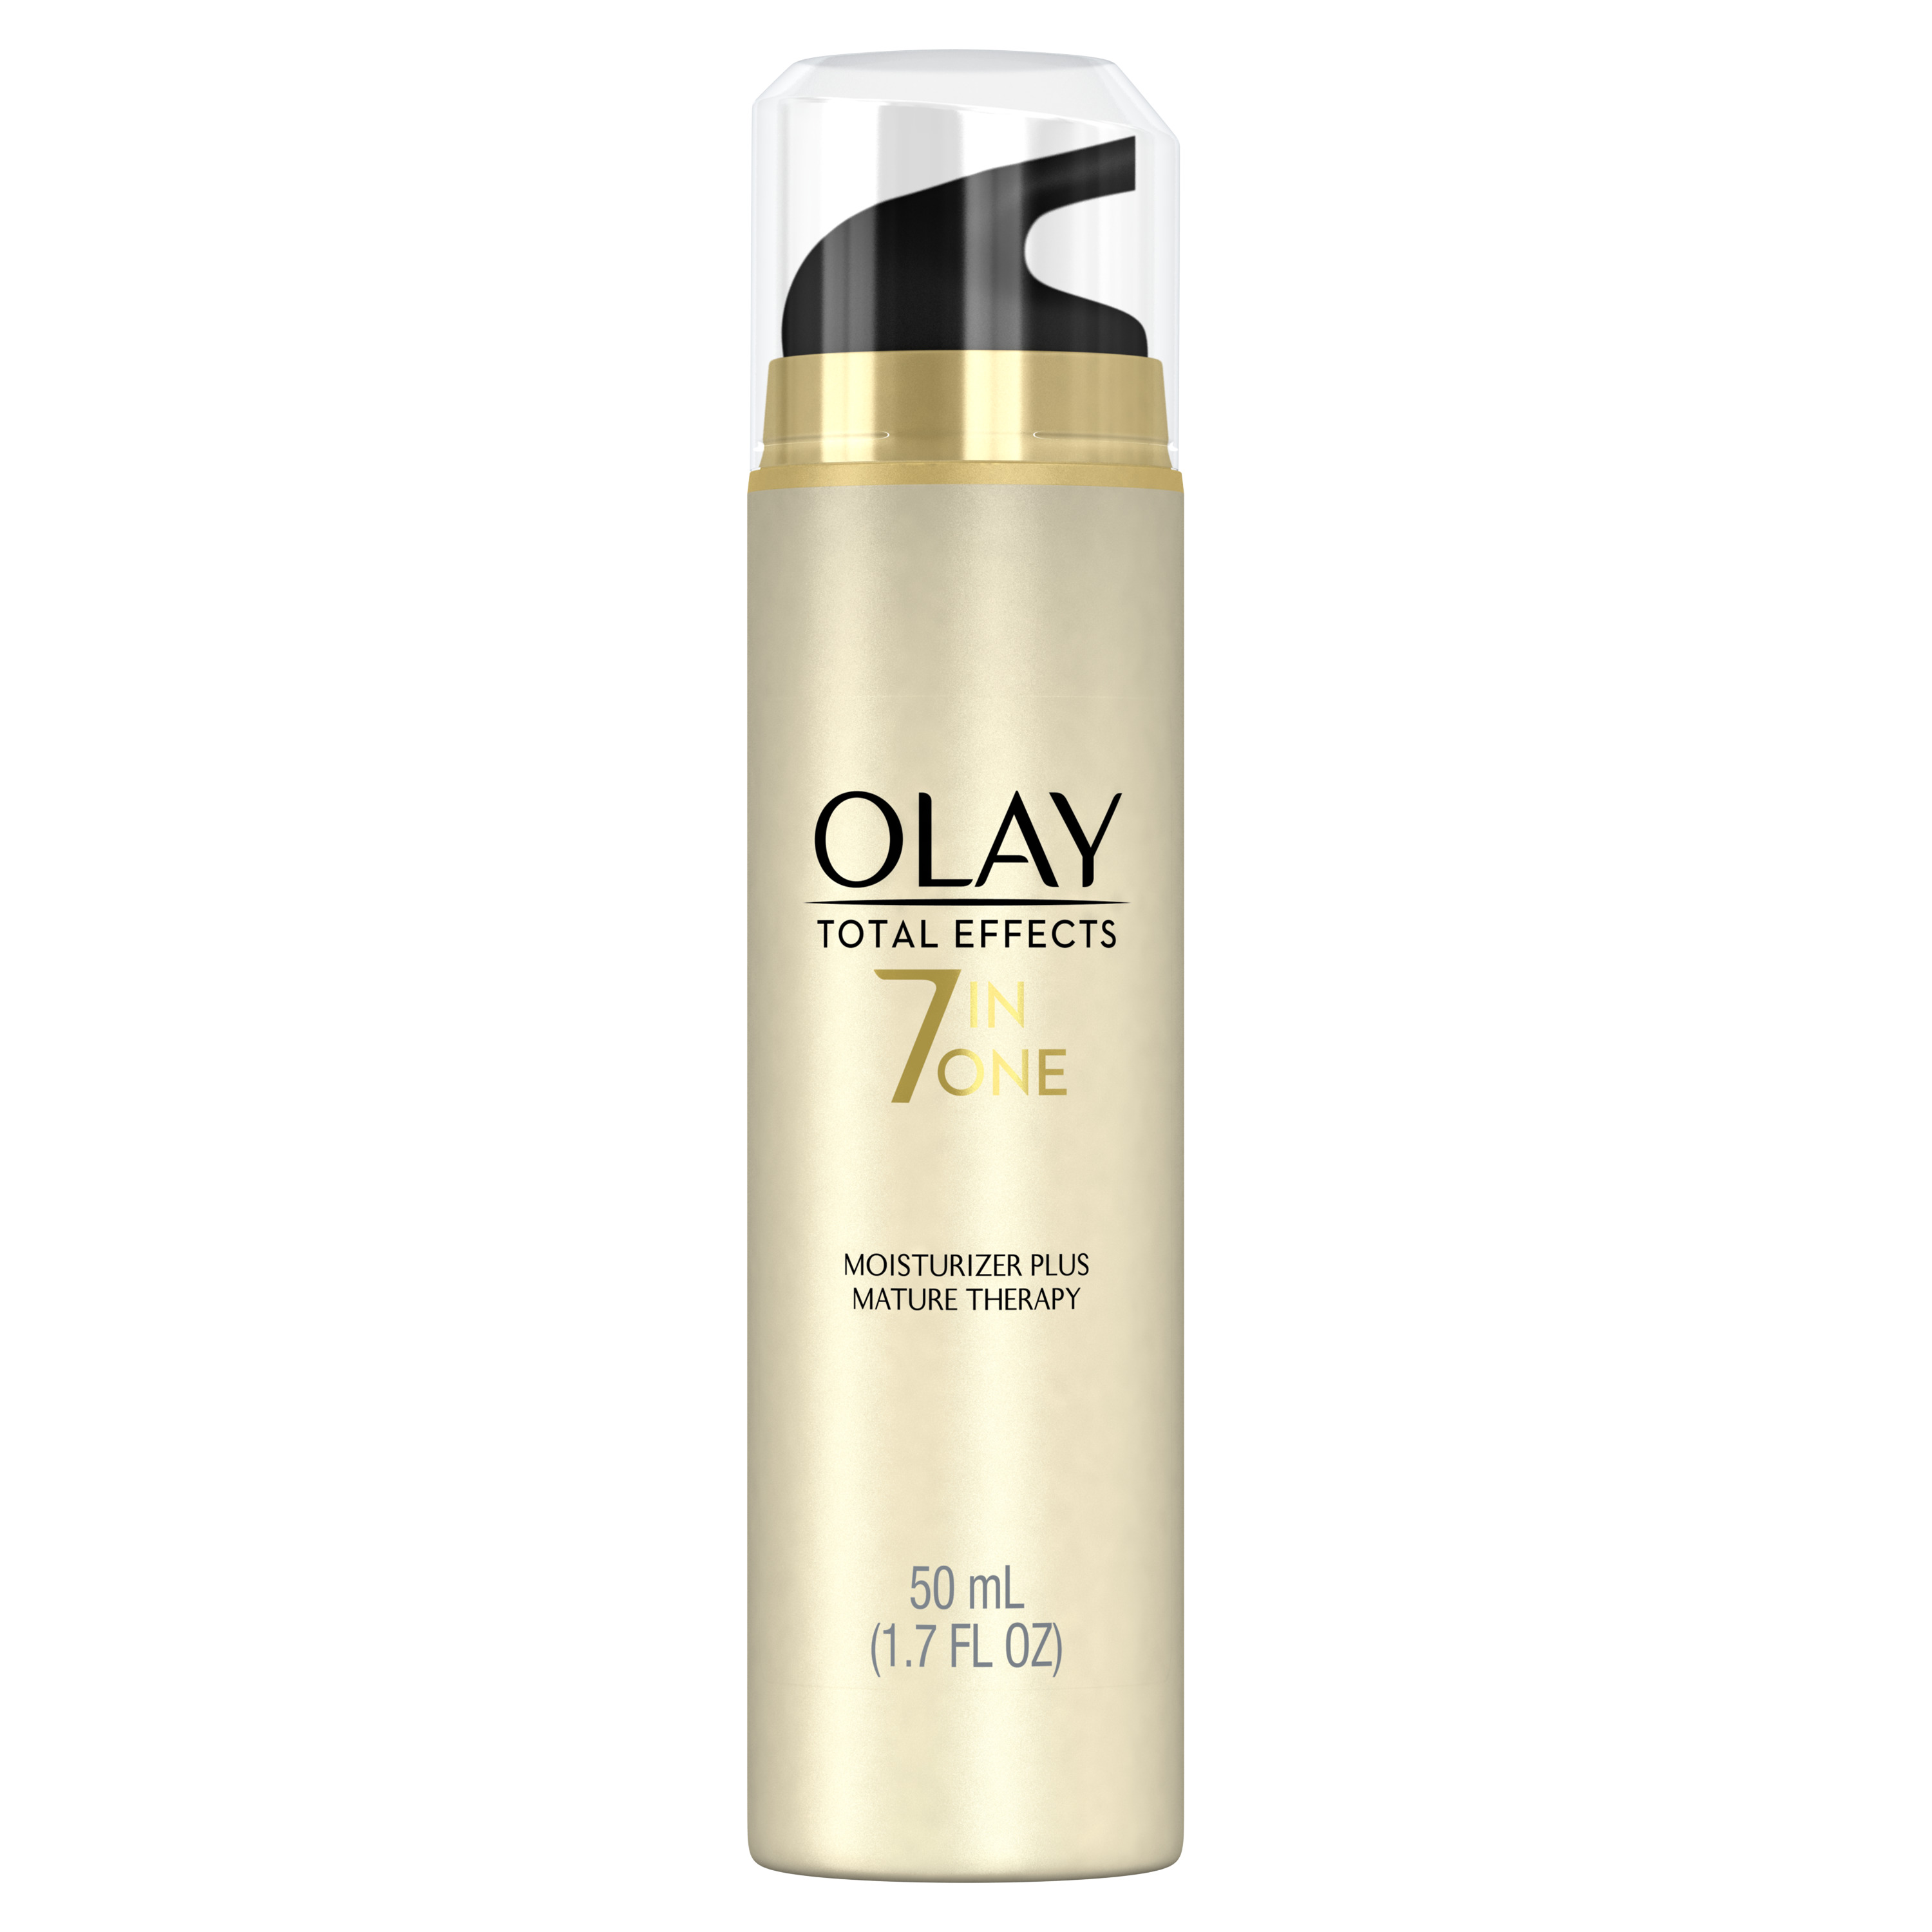 Olay Total Effects 7-in-One Face Moisturizer Mature Therapy Treatment, 1.7 fl oz